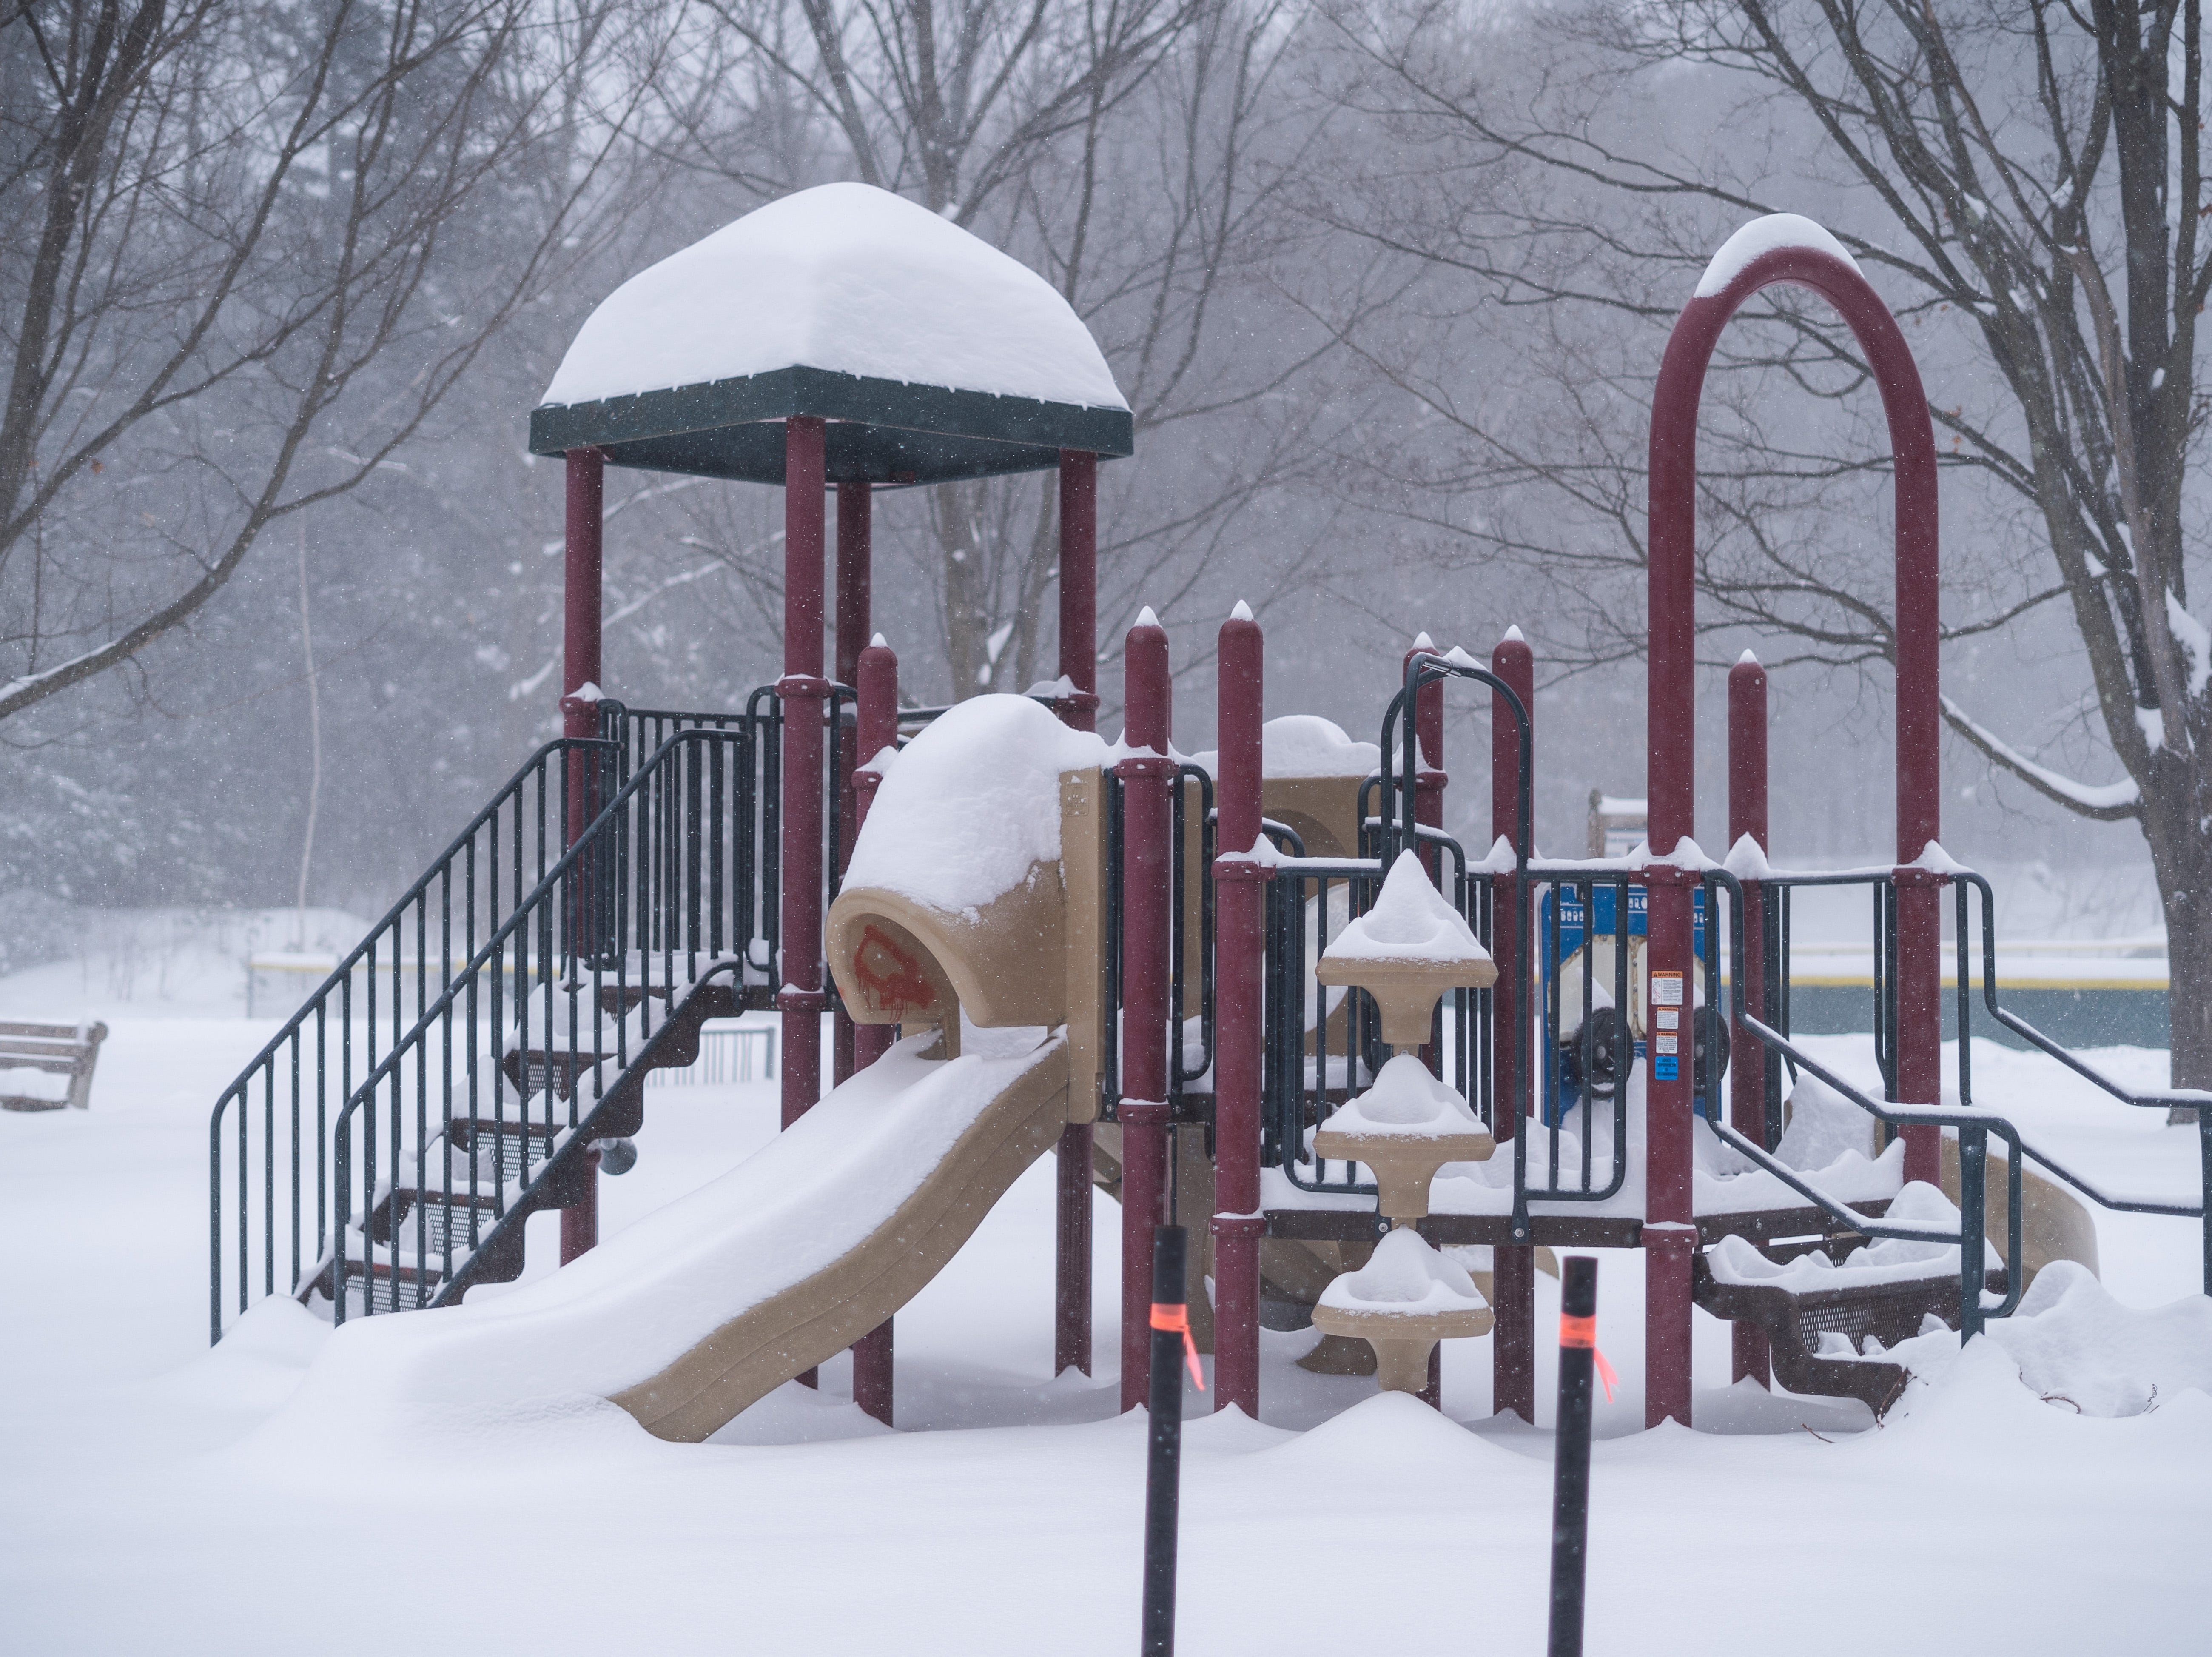 The playground at Farrell Park in South Burlington, pictured during the snowstorm Sunday afternoon, Jan. 20, 2019.